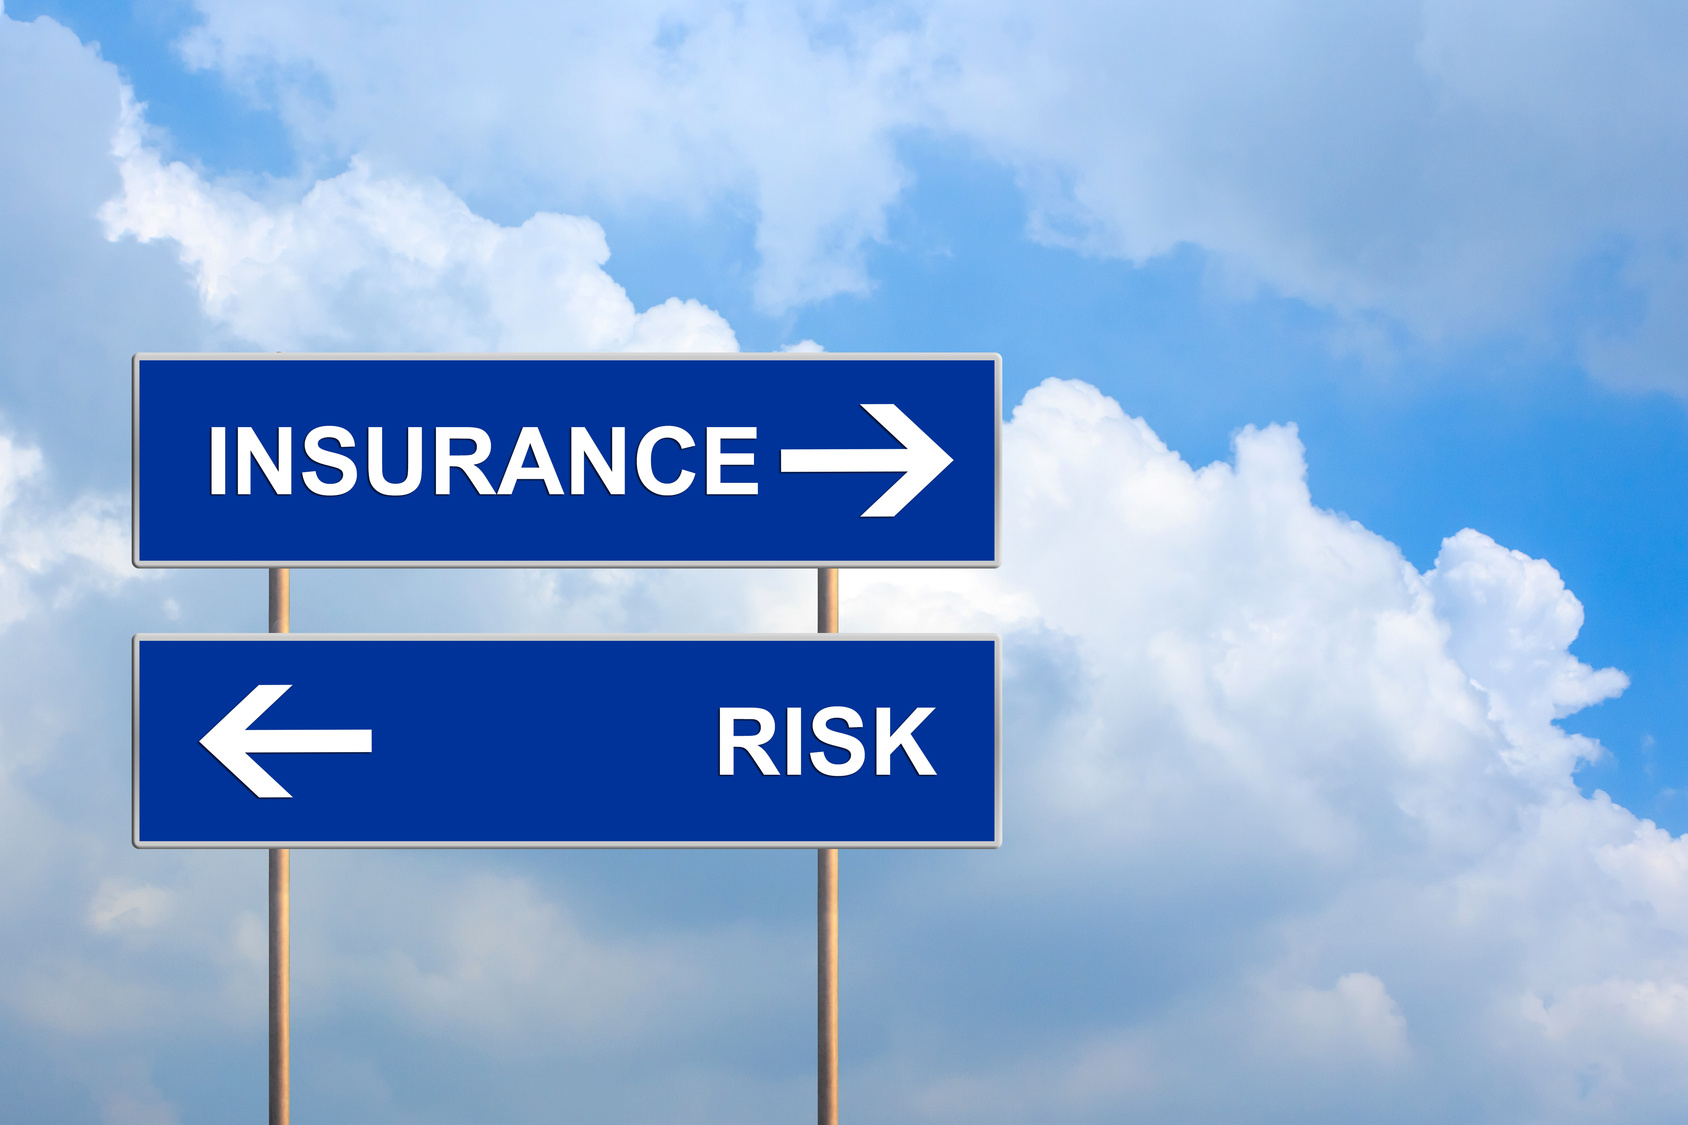 Youngs Insurance provides tips to Protect Your Business from Inside Risks